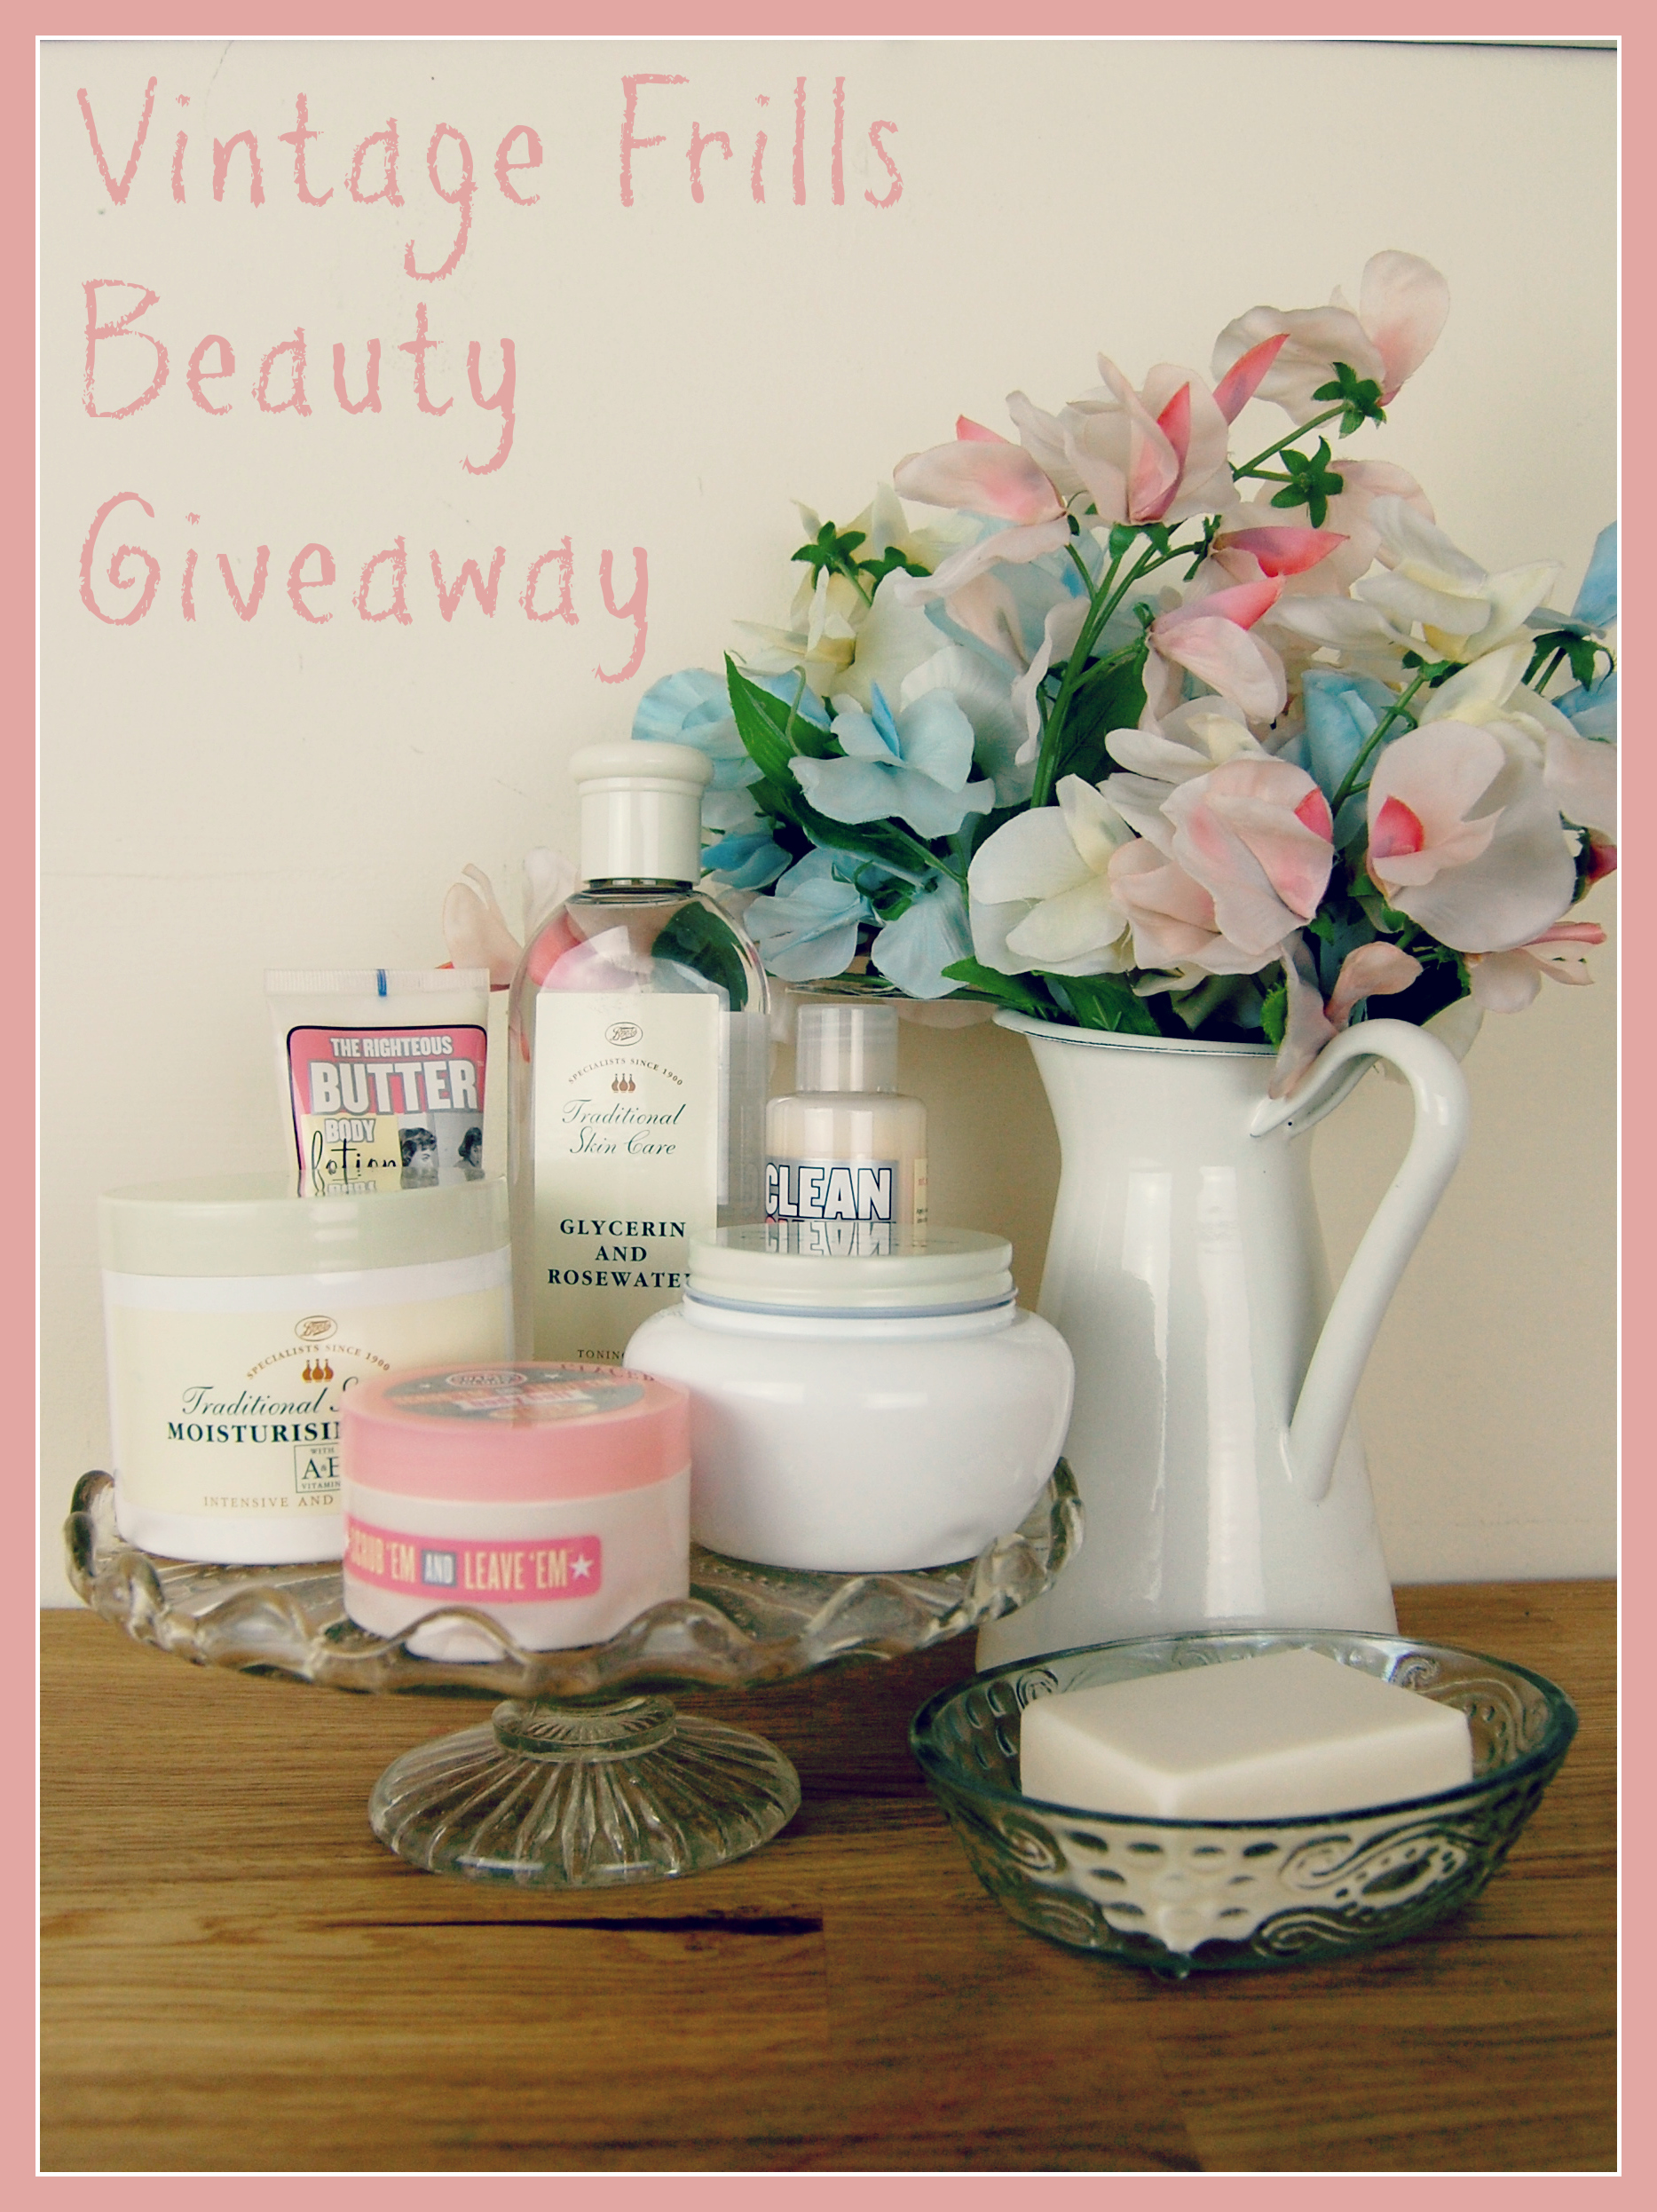 Beauty Giveaway 1